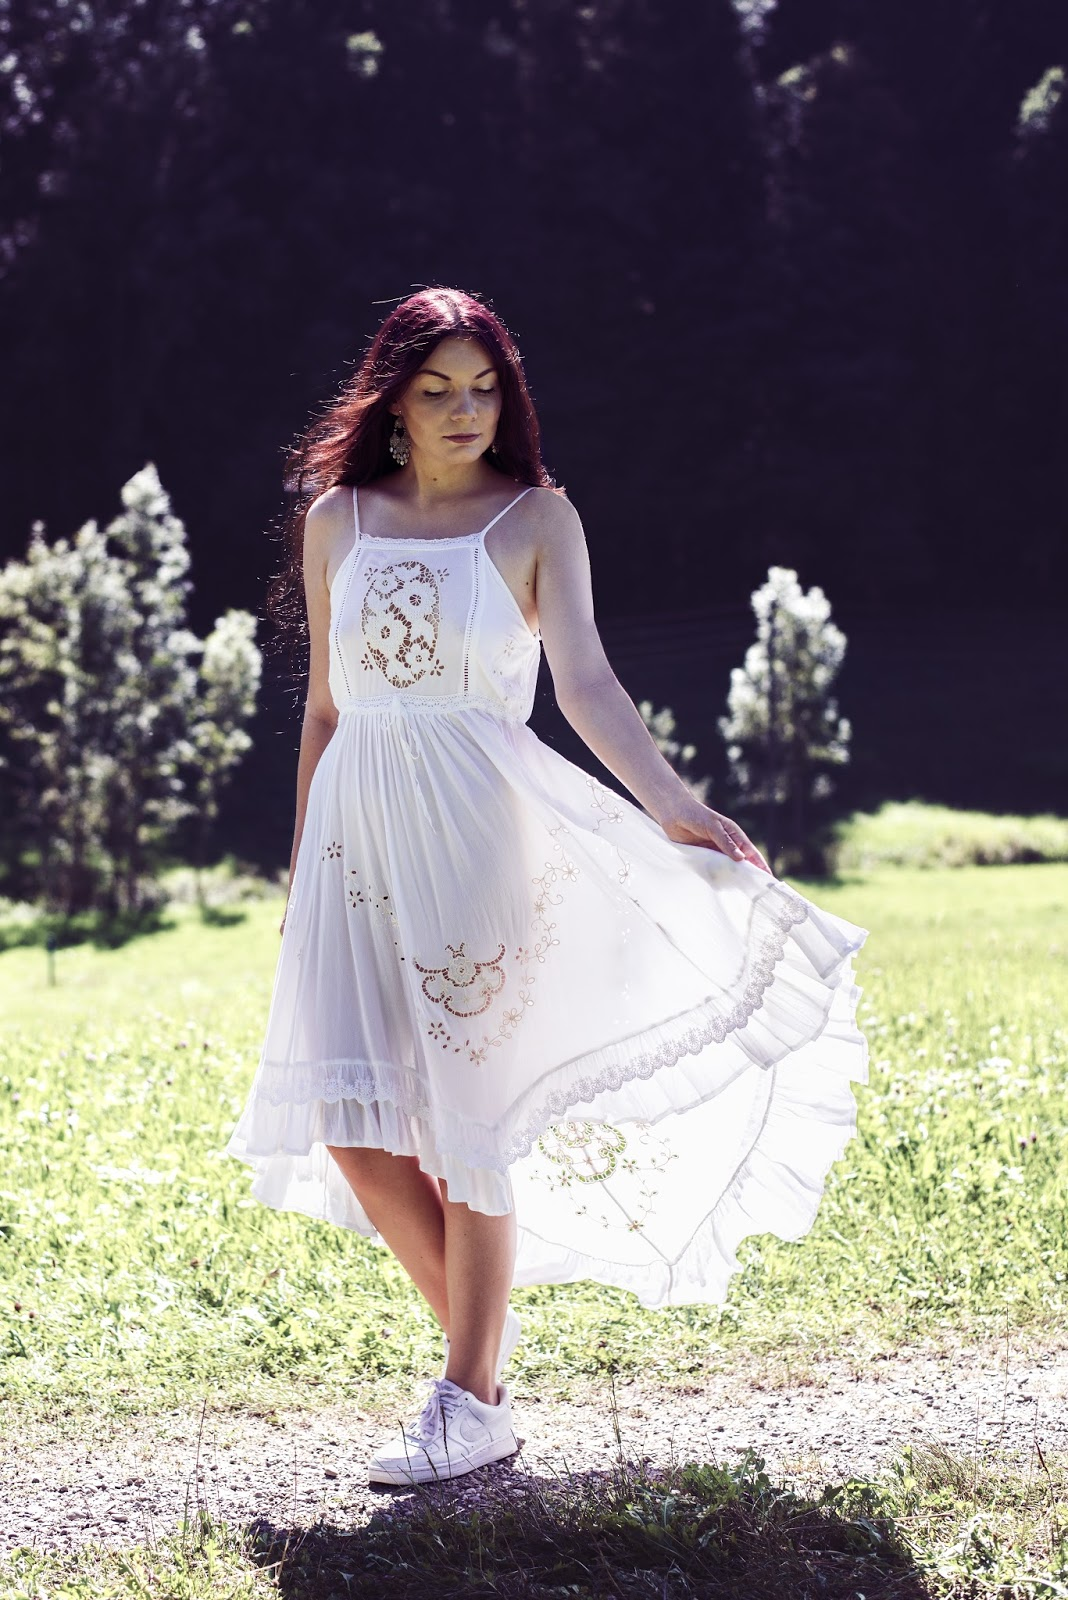 Spell Designs Isla Bonita Embroidered Dress | Rose Kiara Peaches